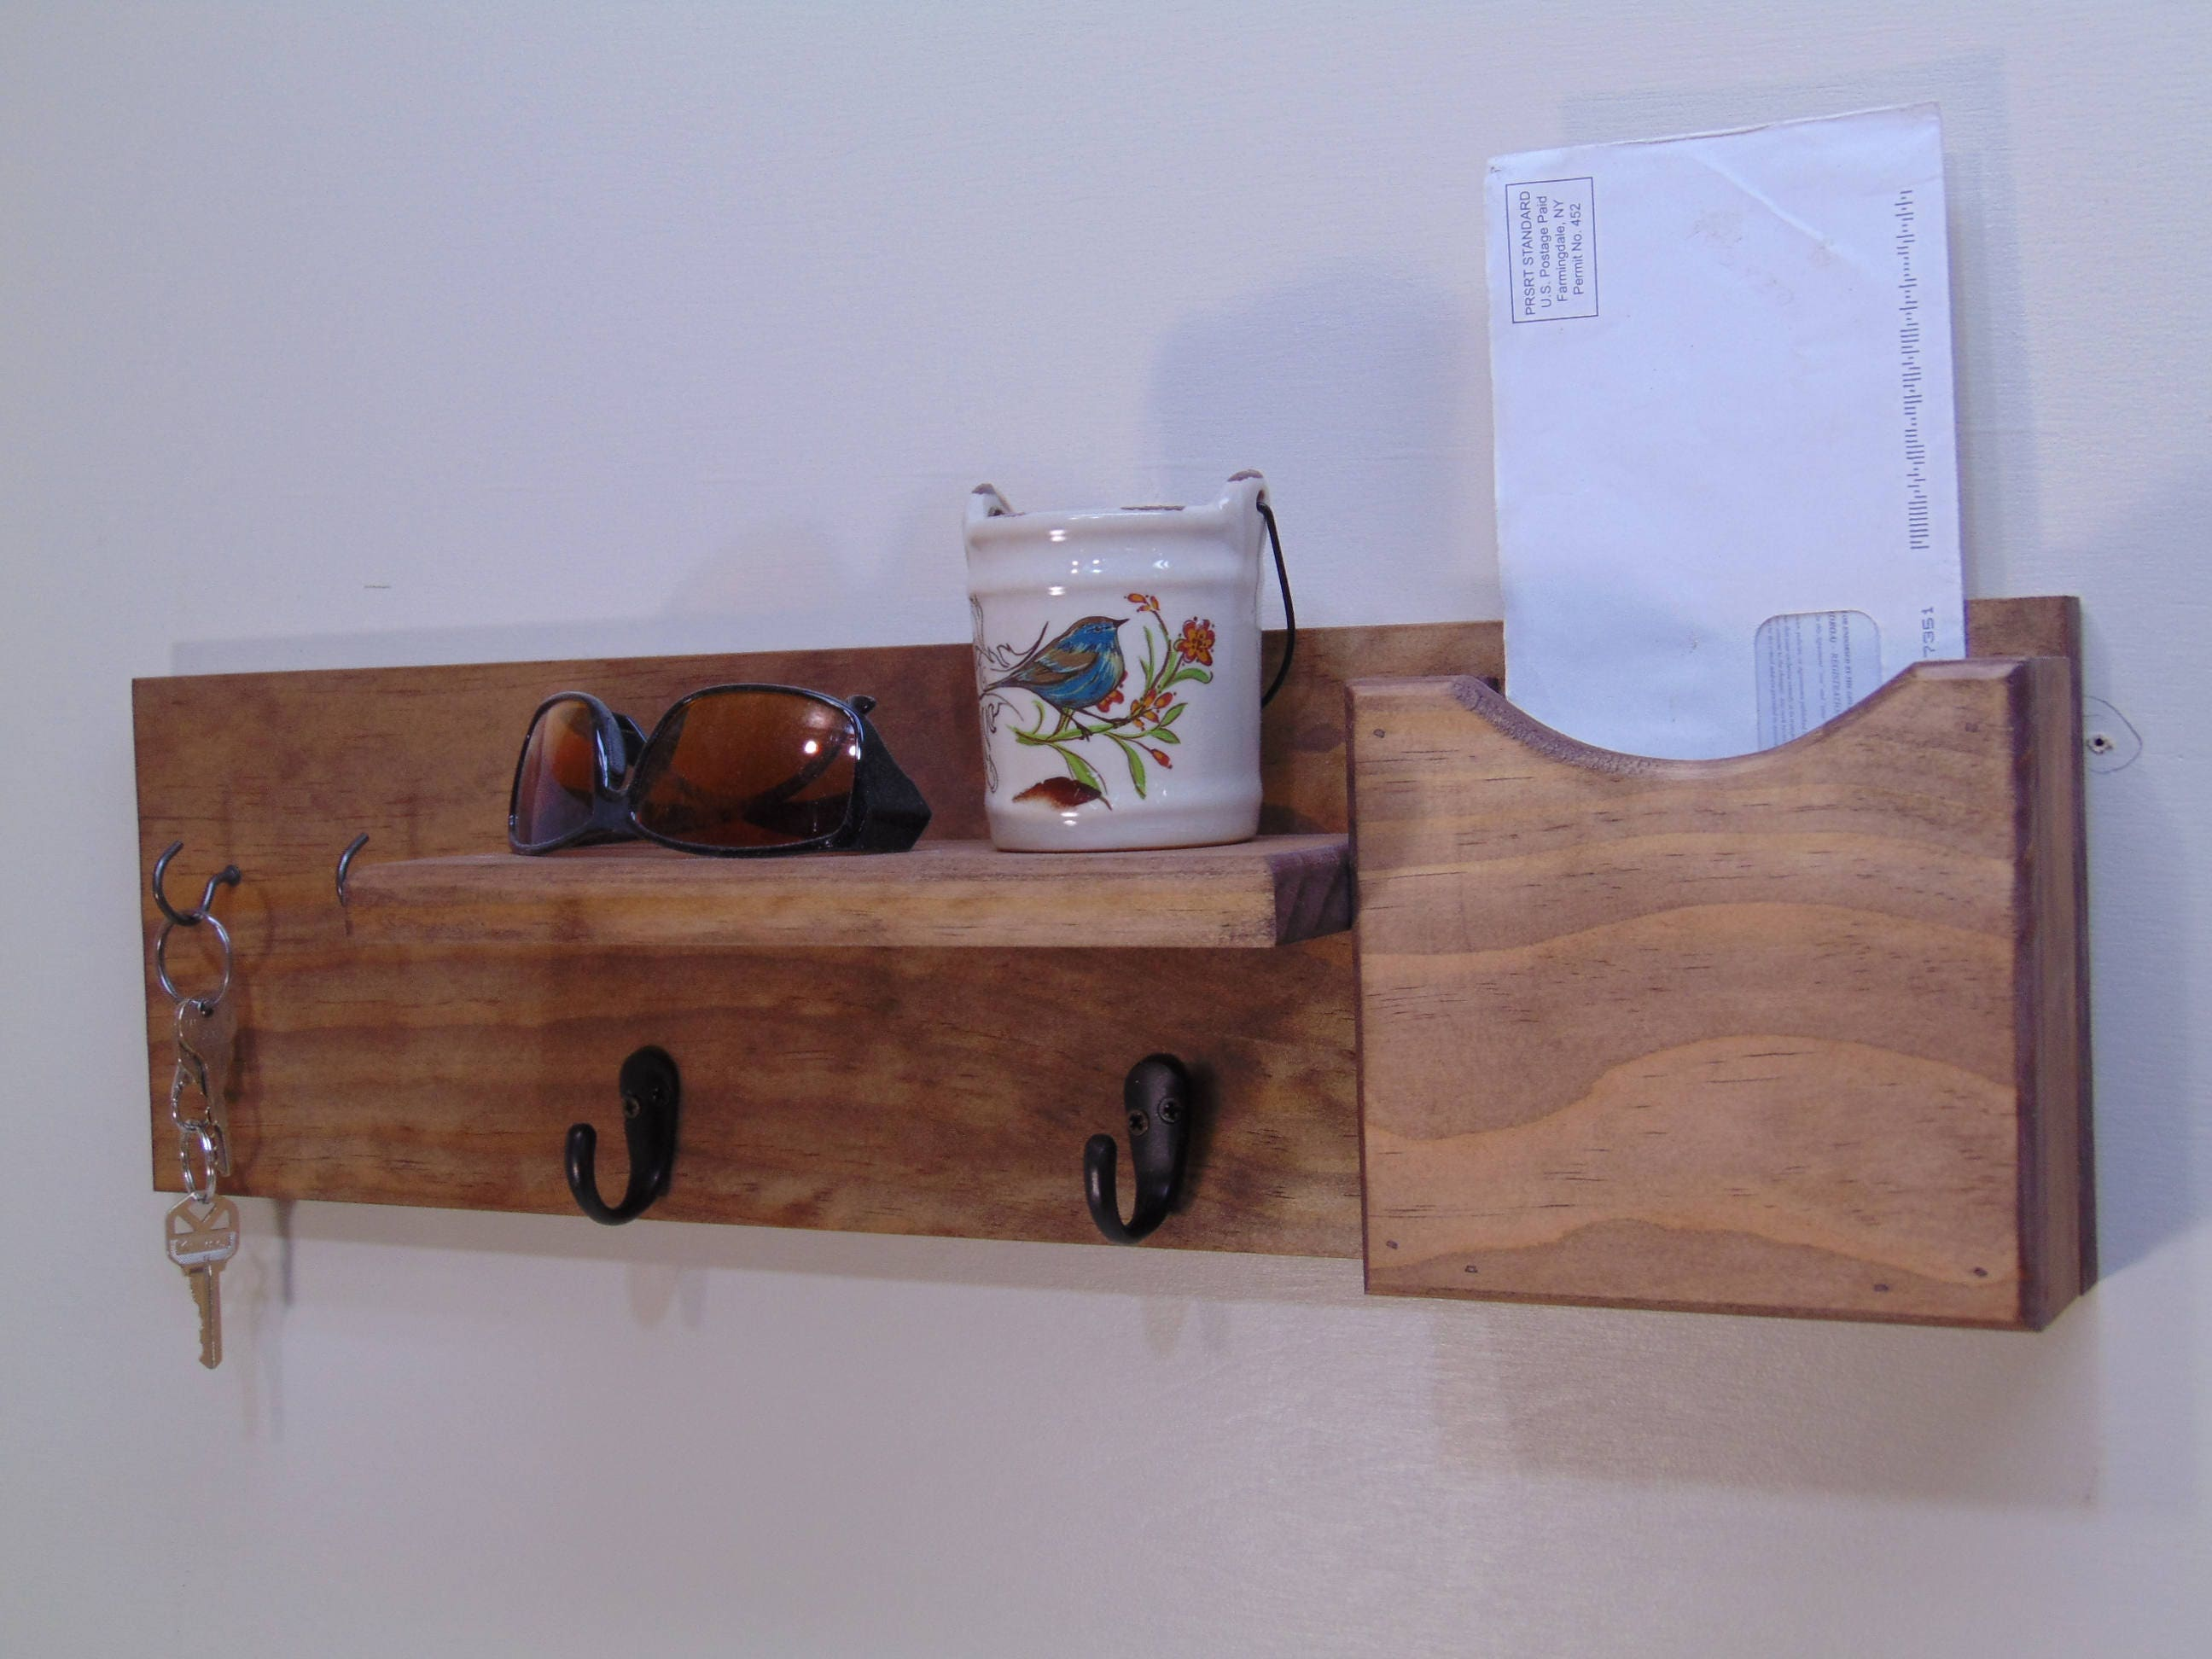 ... Shelf U2013 Coat Hooks. Gallery Photo Gallery Photo ...